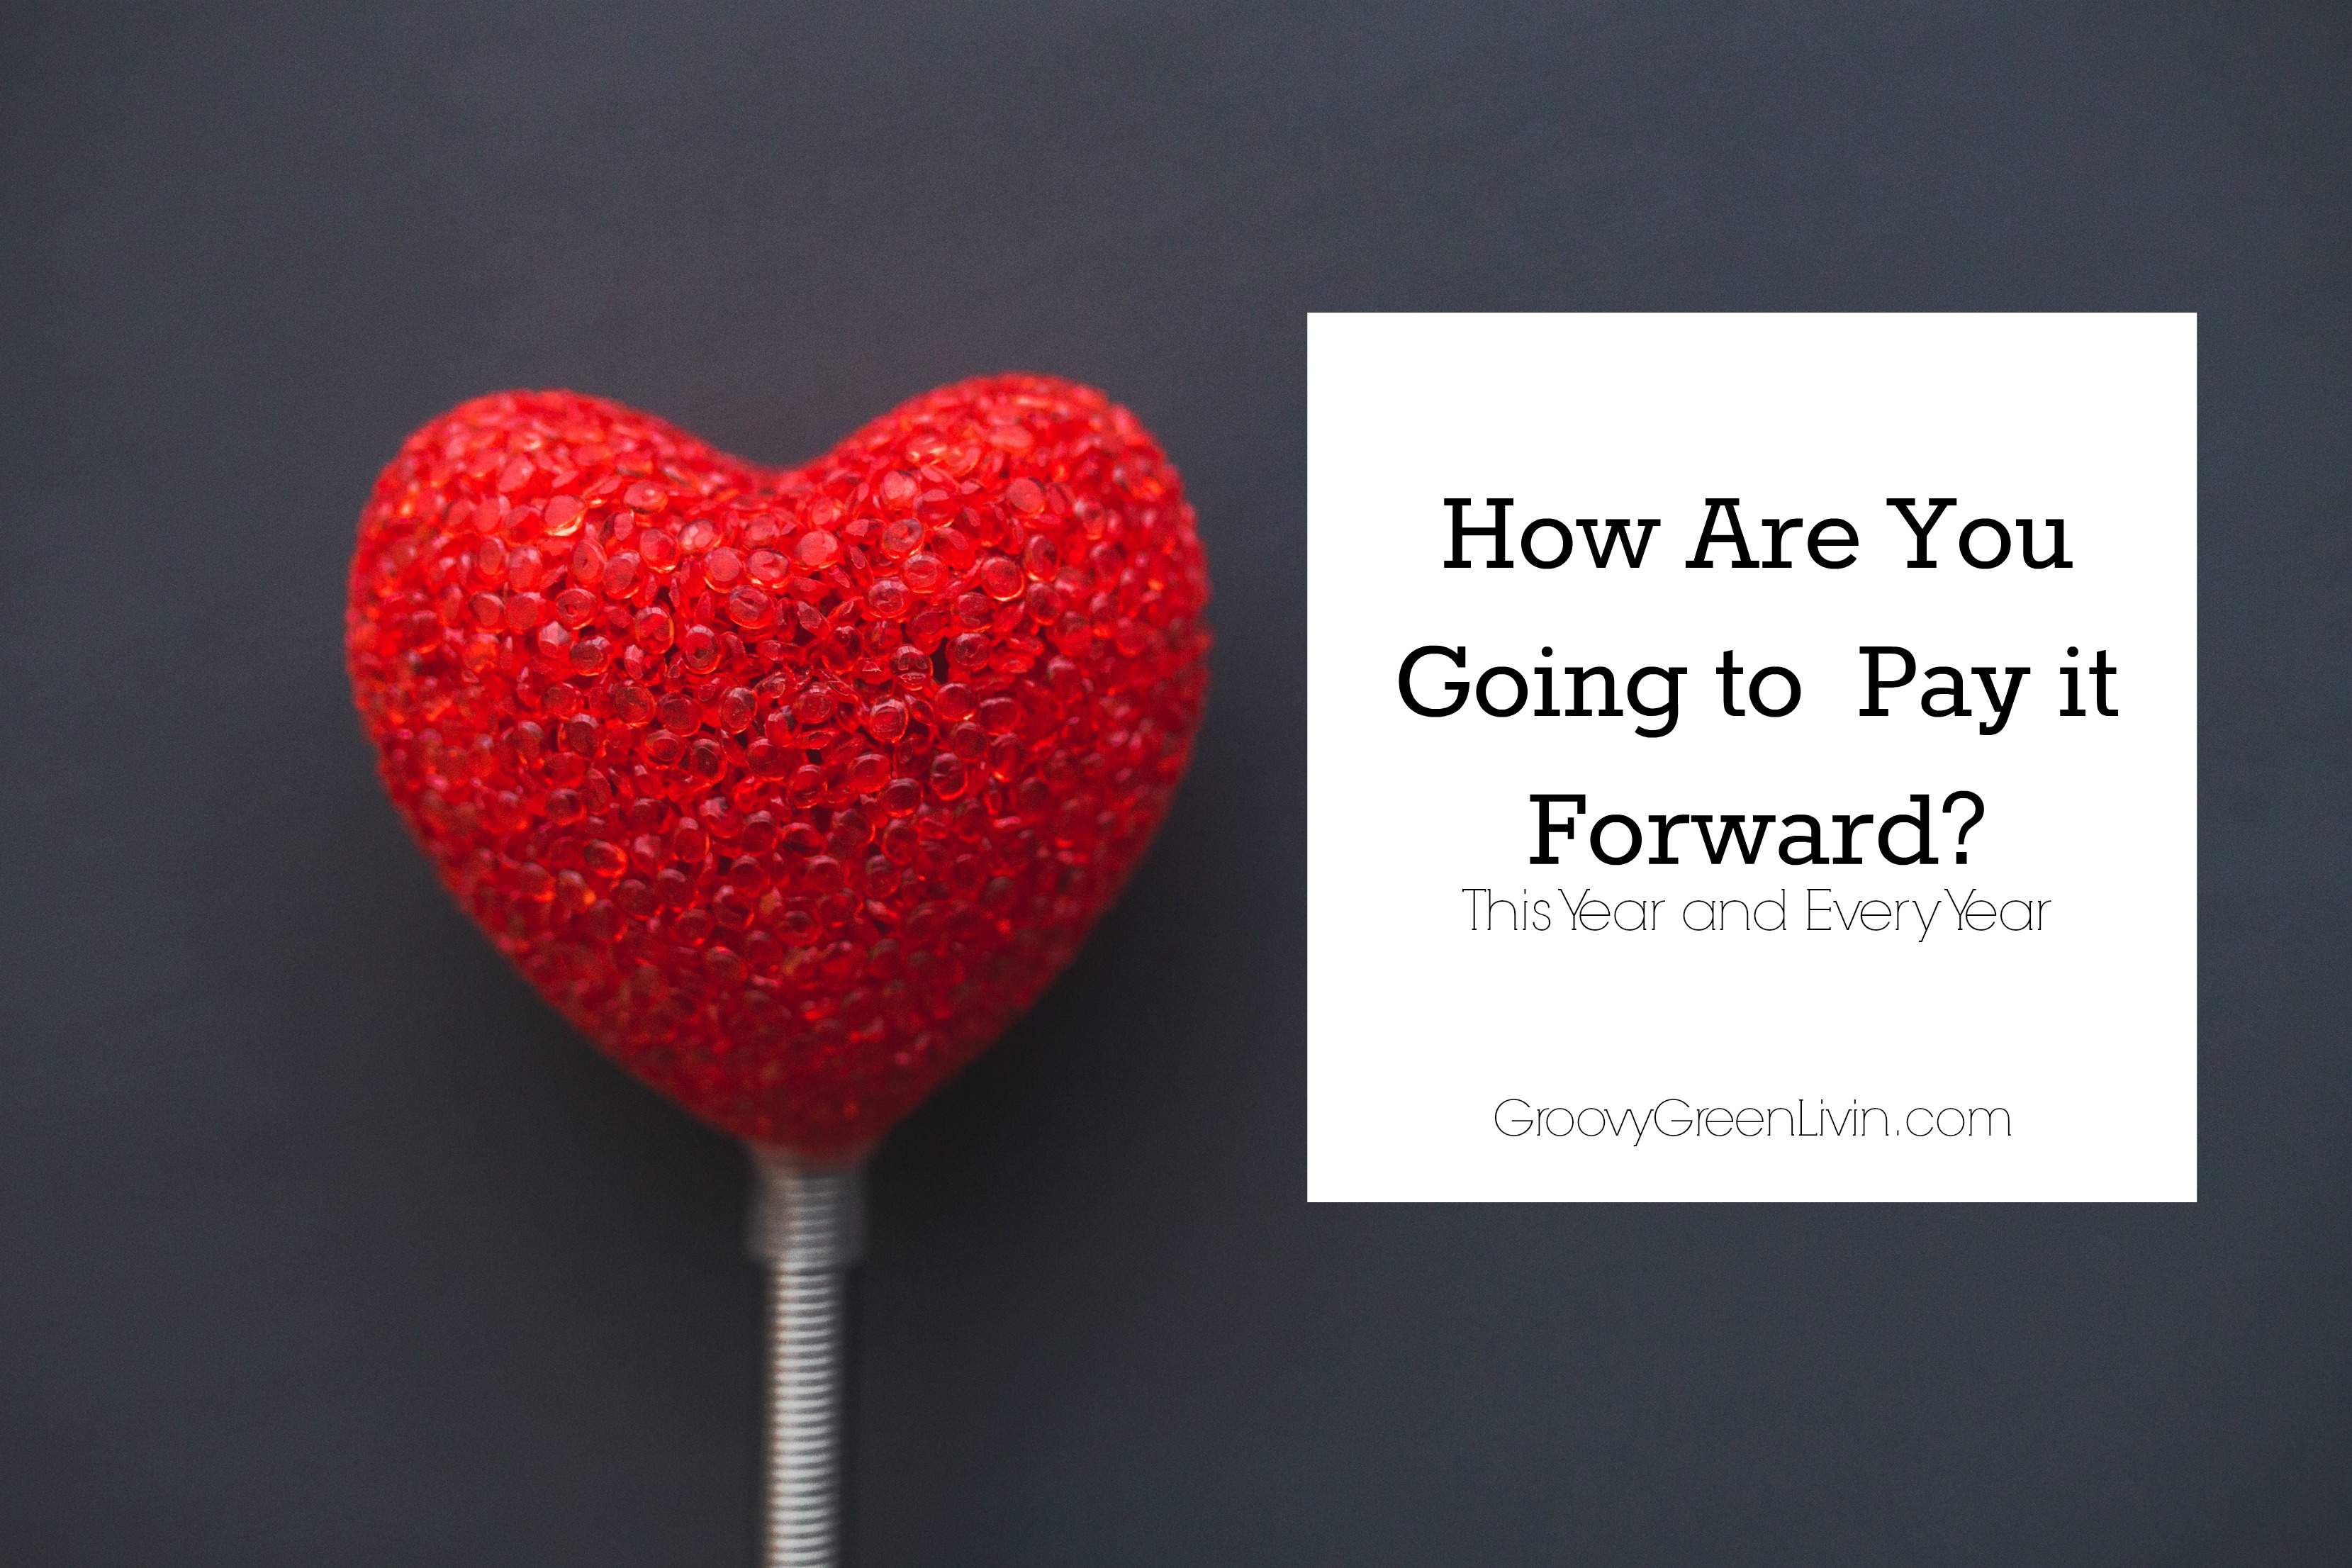 How Are You Going to Pay it Forward This Year?